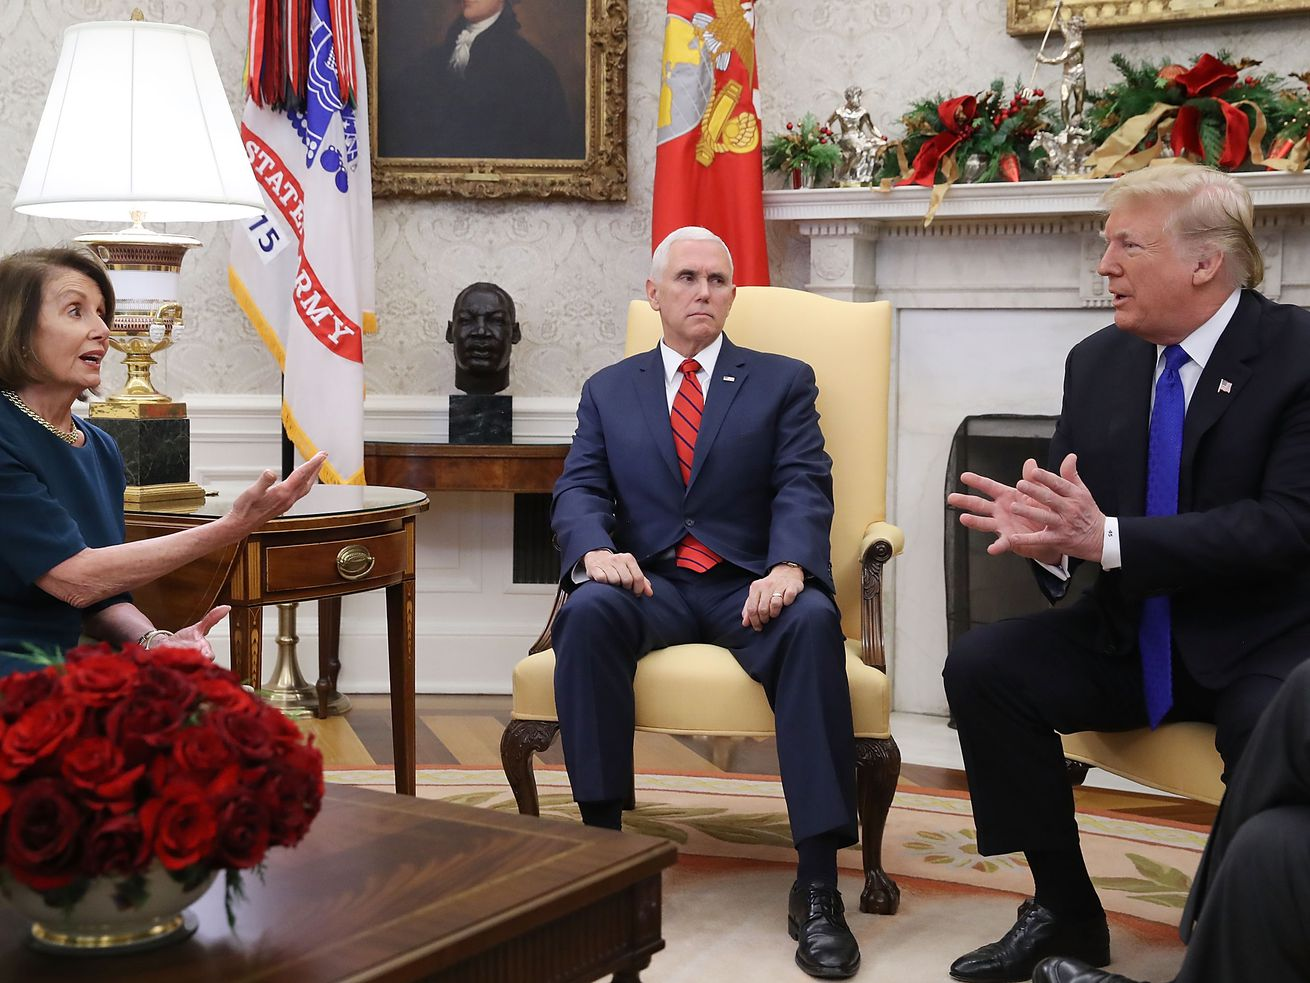 President Donald Trump argues about border security with House Minority Leader Nancy Pelosi as Vice President Mike Pence sits nearby in the Oval Office on December 11, 2018, in Washington, DC.